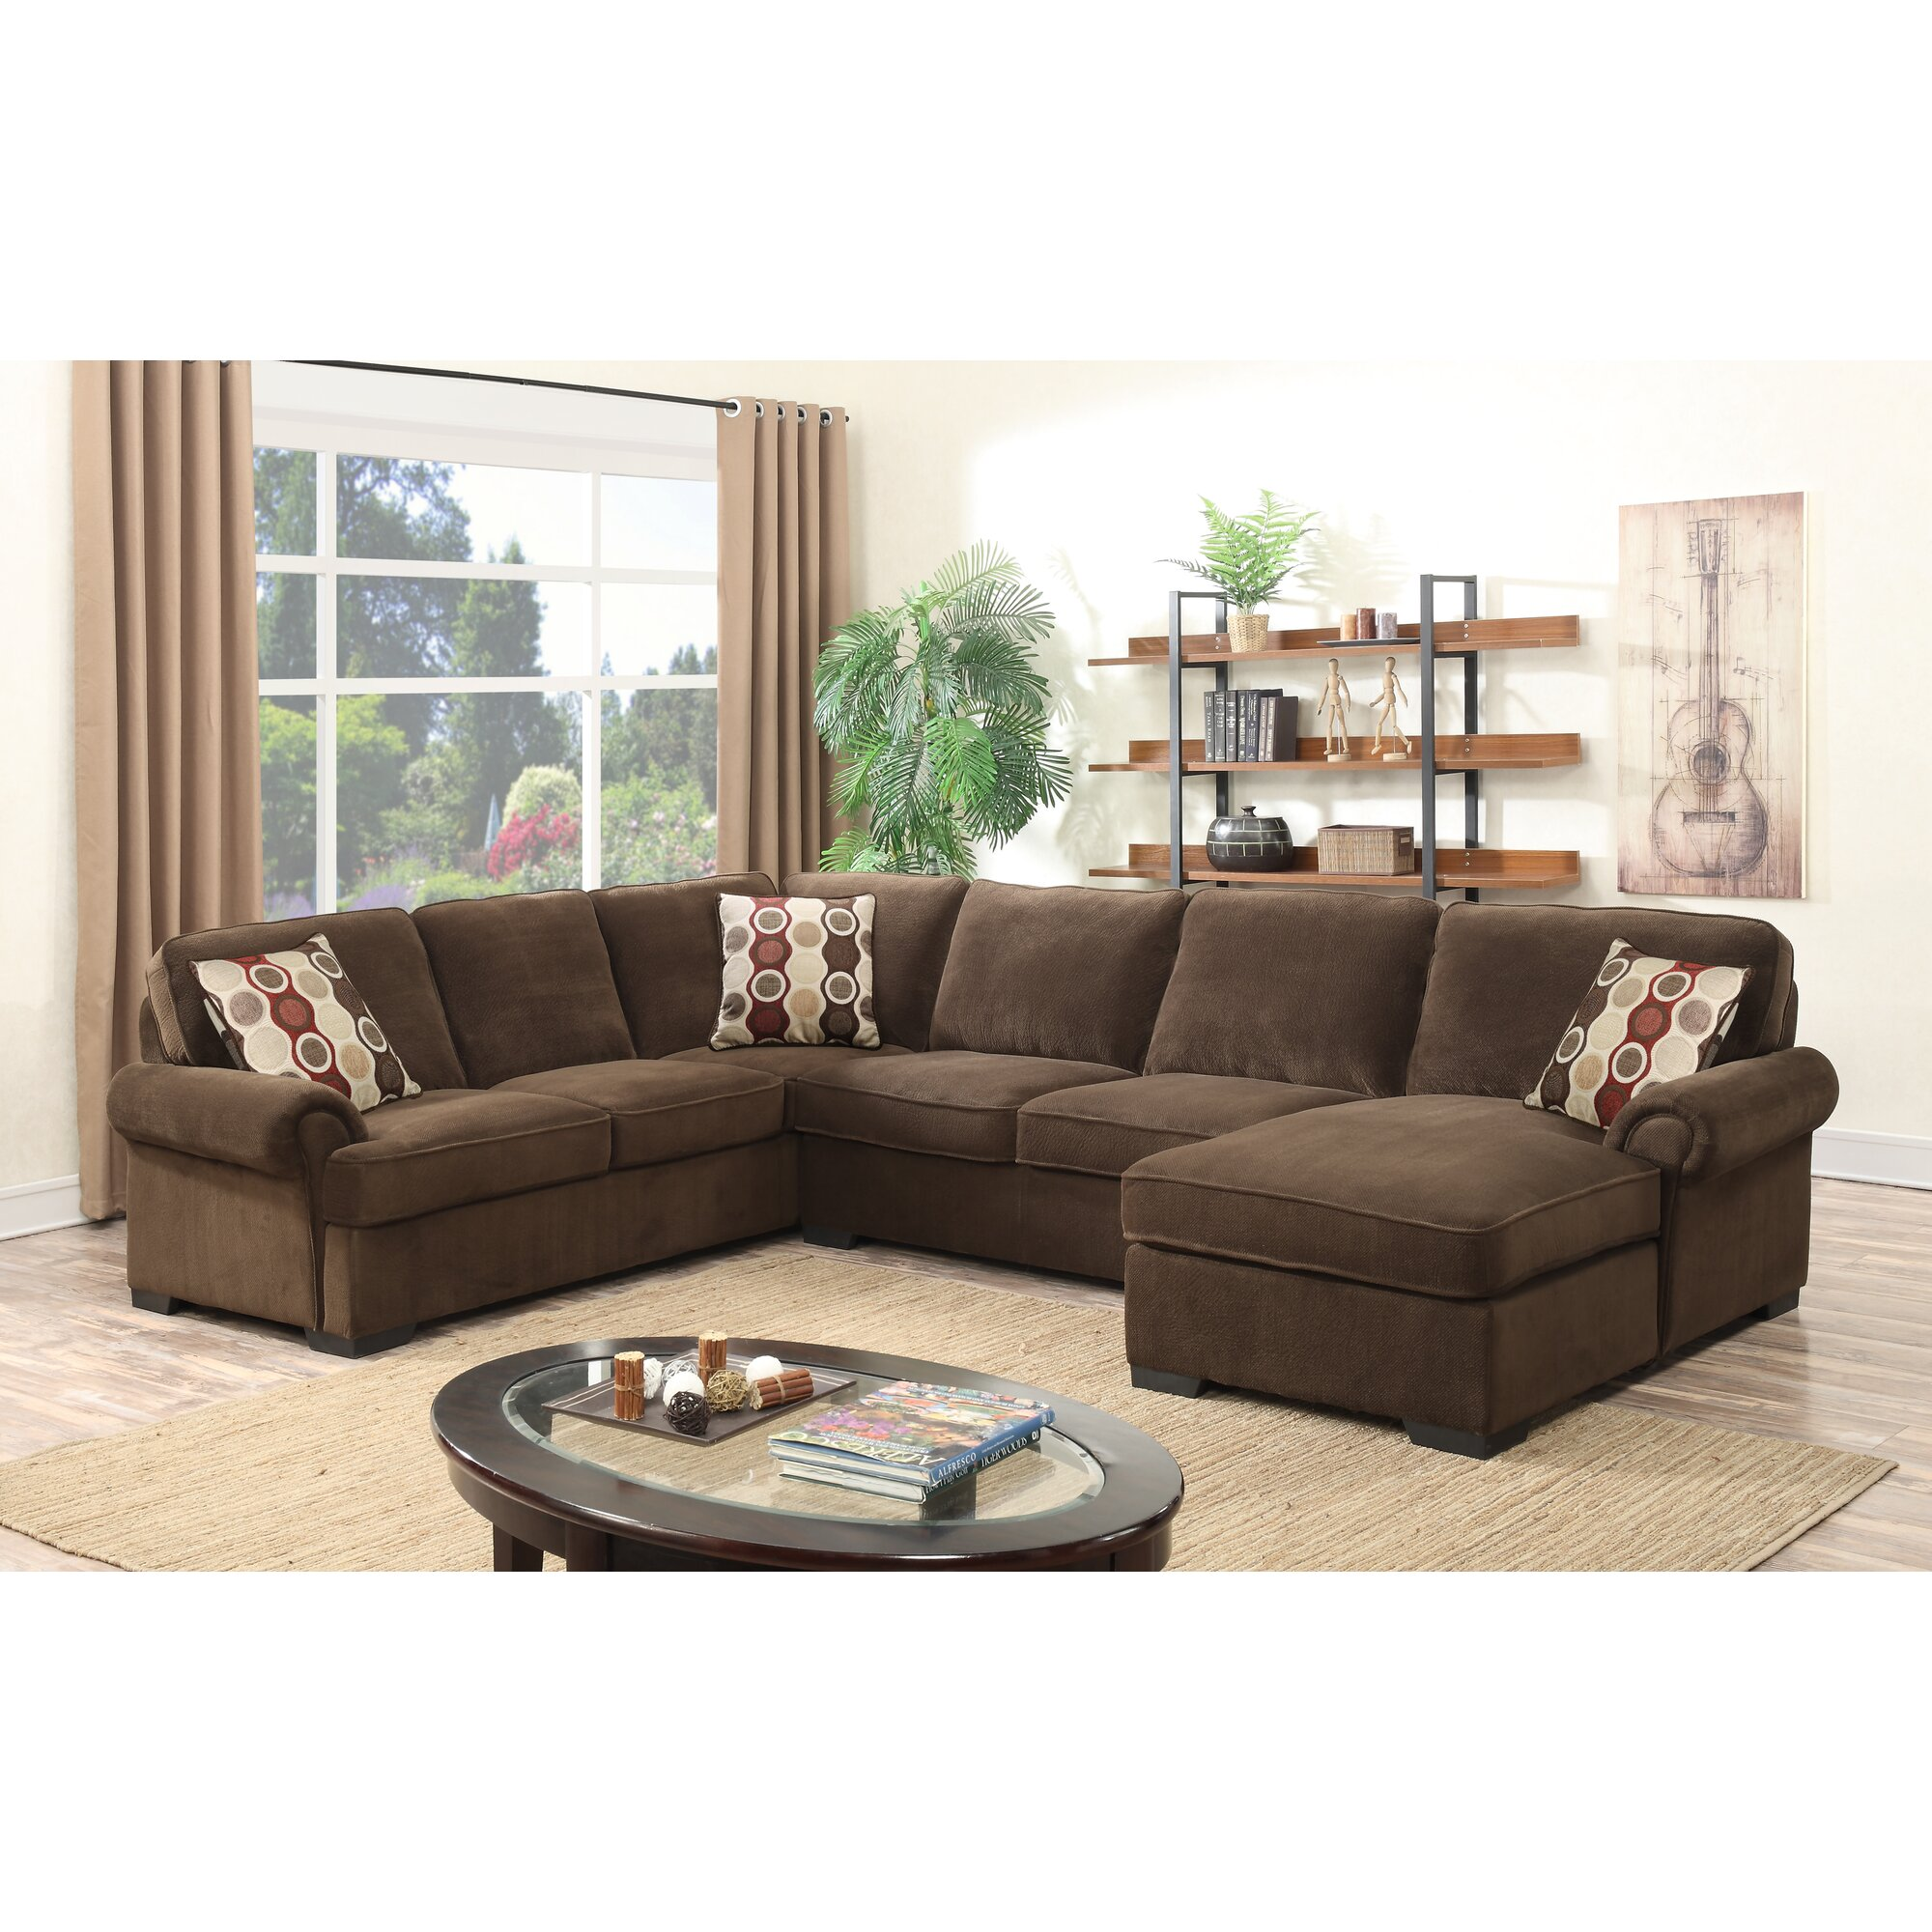 Best quality furniture sleeper sectional for Best quality furniture